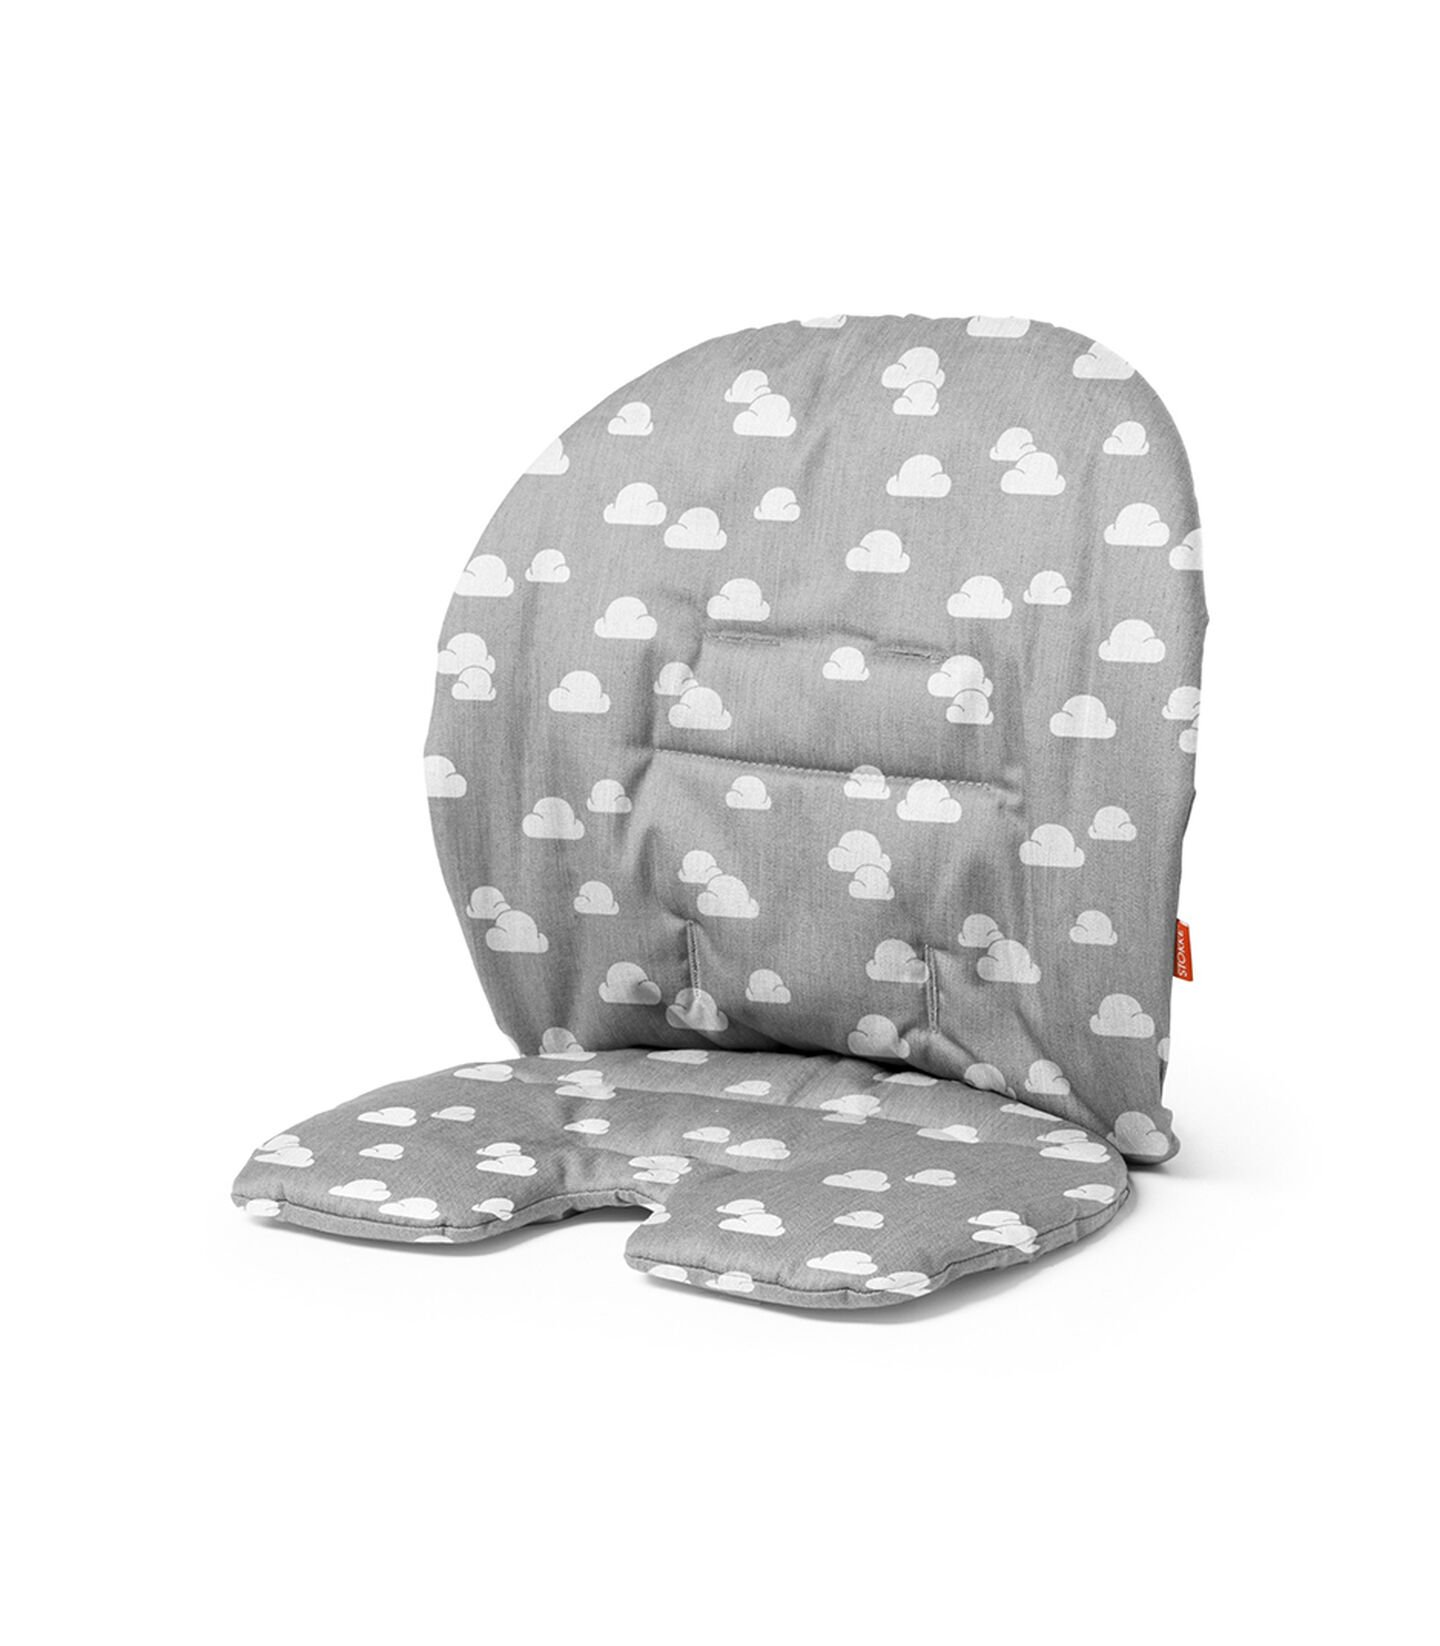 @Home; Accessories; Cushion; Grey Clouds; Photo; Plain; Stokke Steps